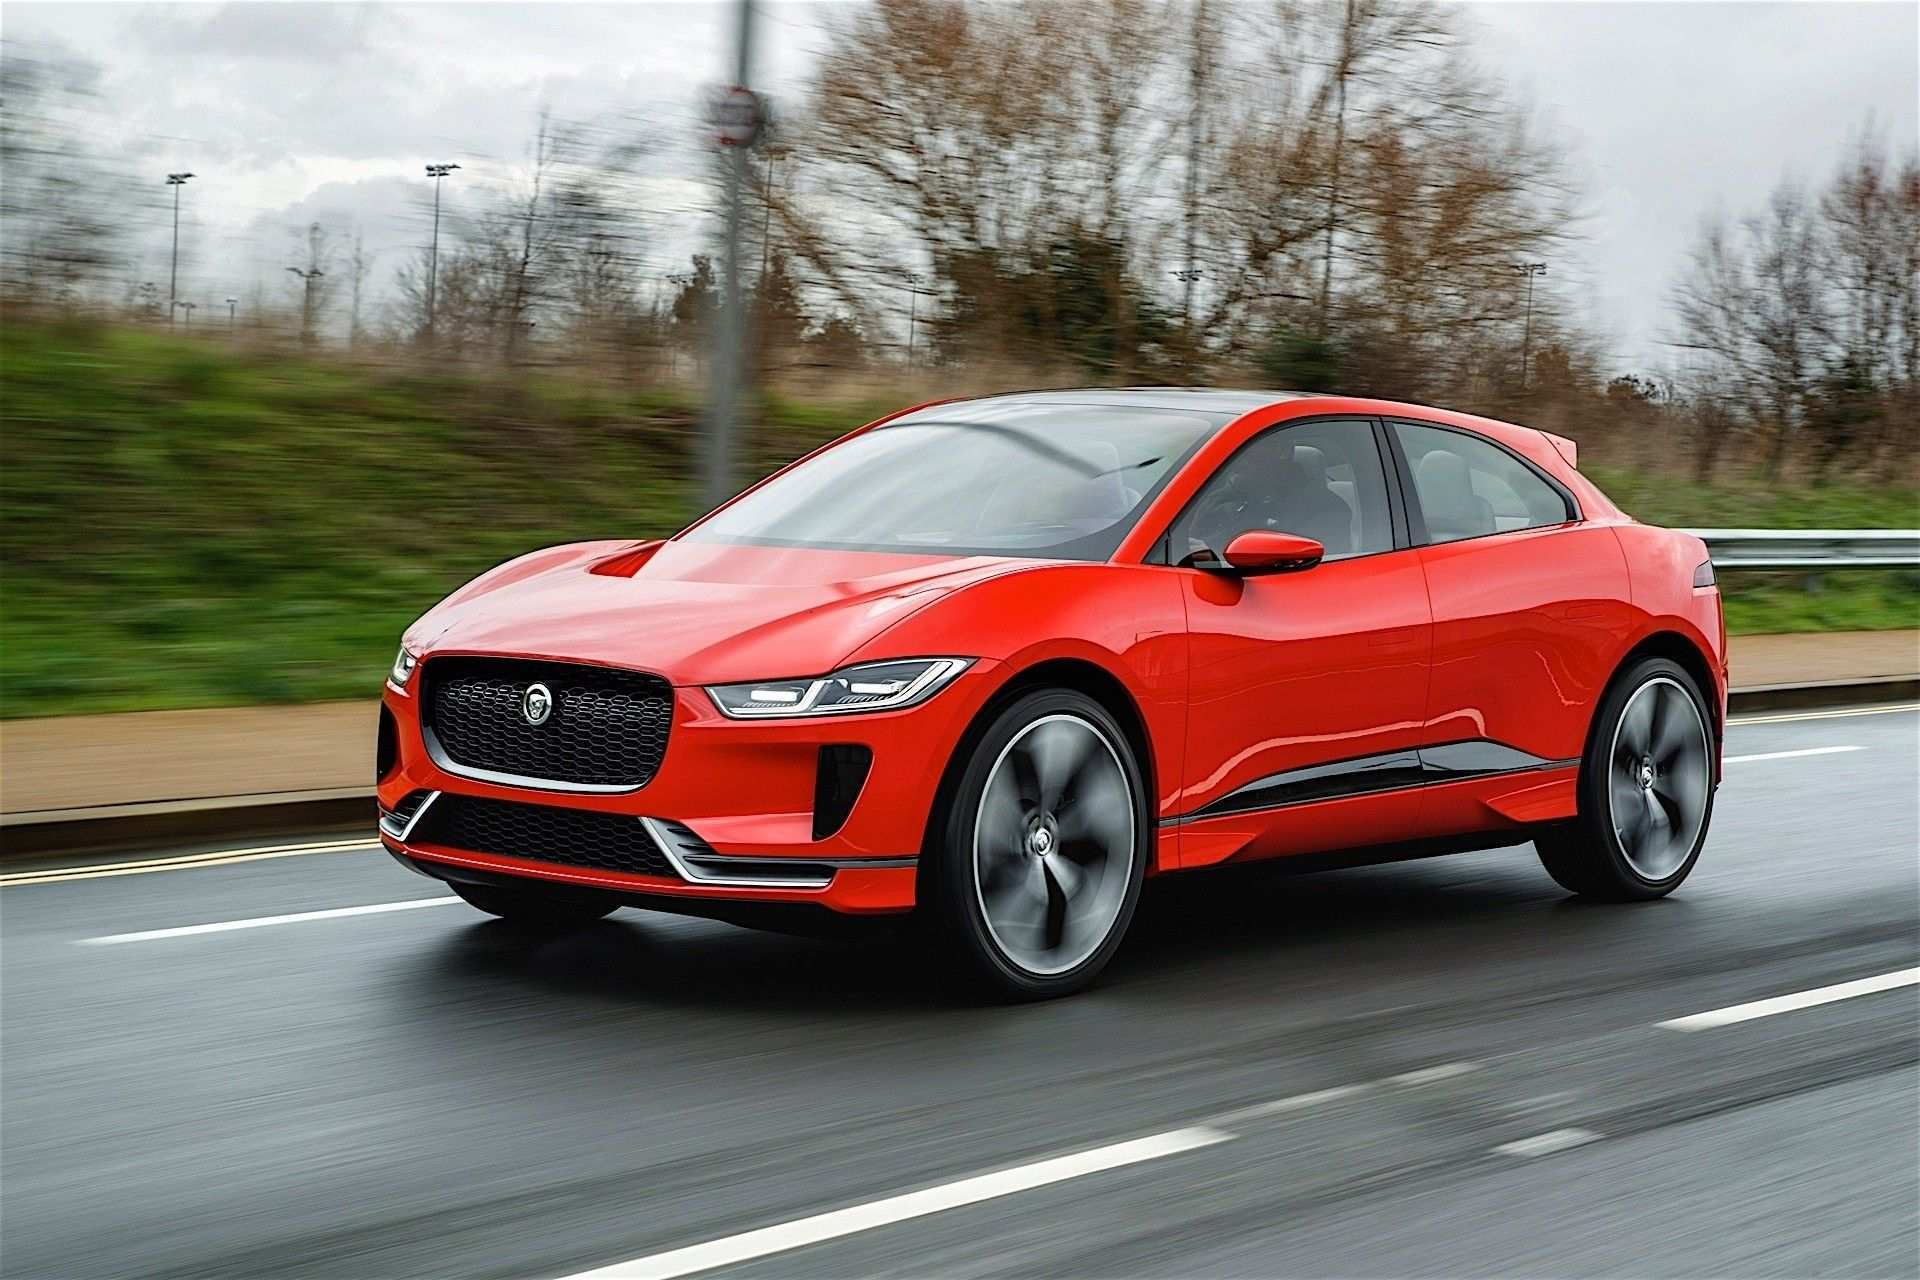 32 All New 2019 Jaguar Xq Crossover Specs and Review with 2019 Jaguar Xq Crossover